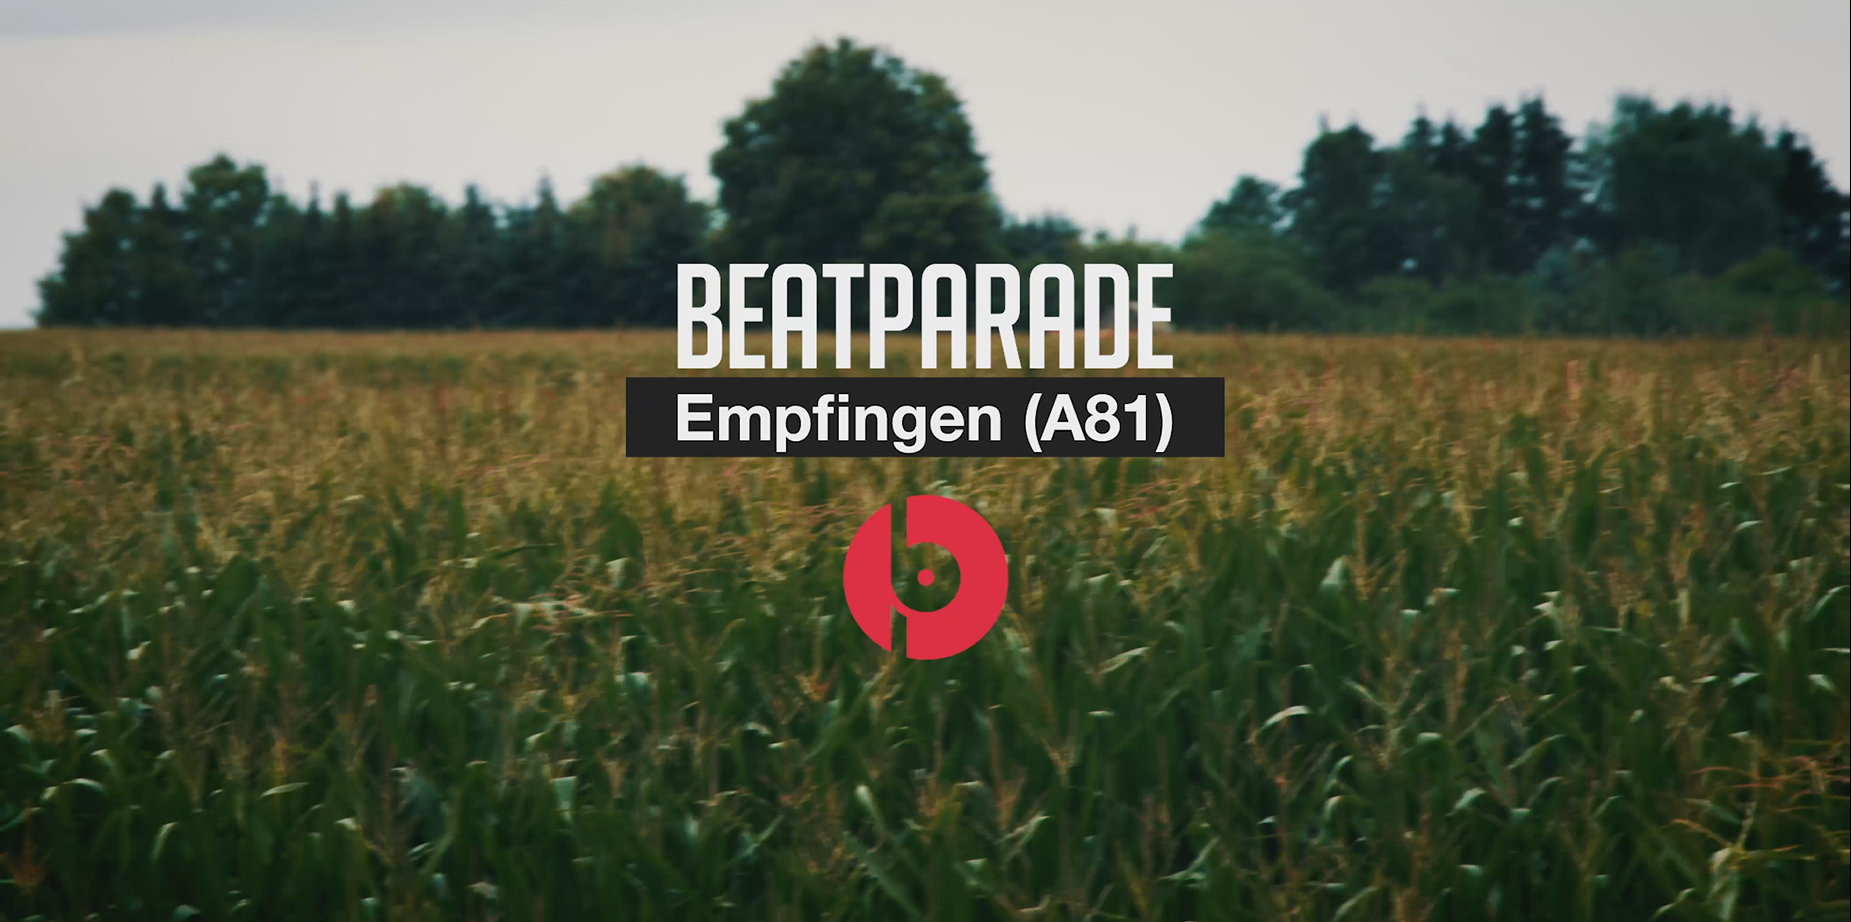 BEATPARADE 2018 - Aftermovie-Teaser